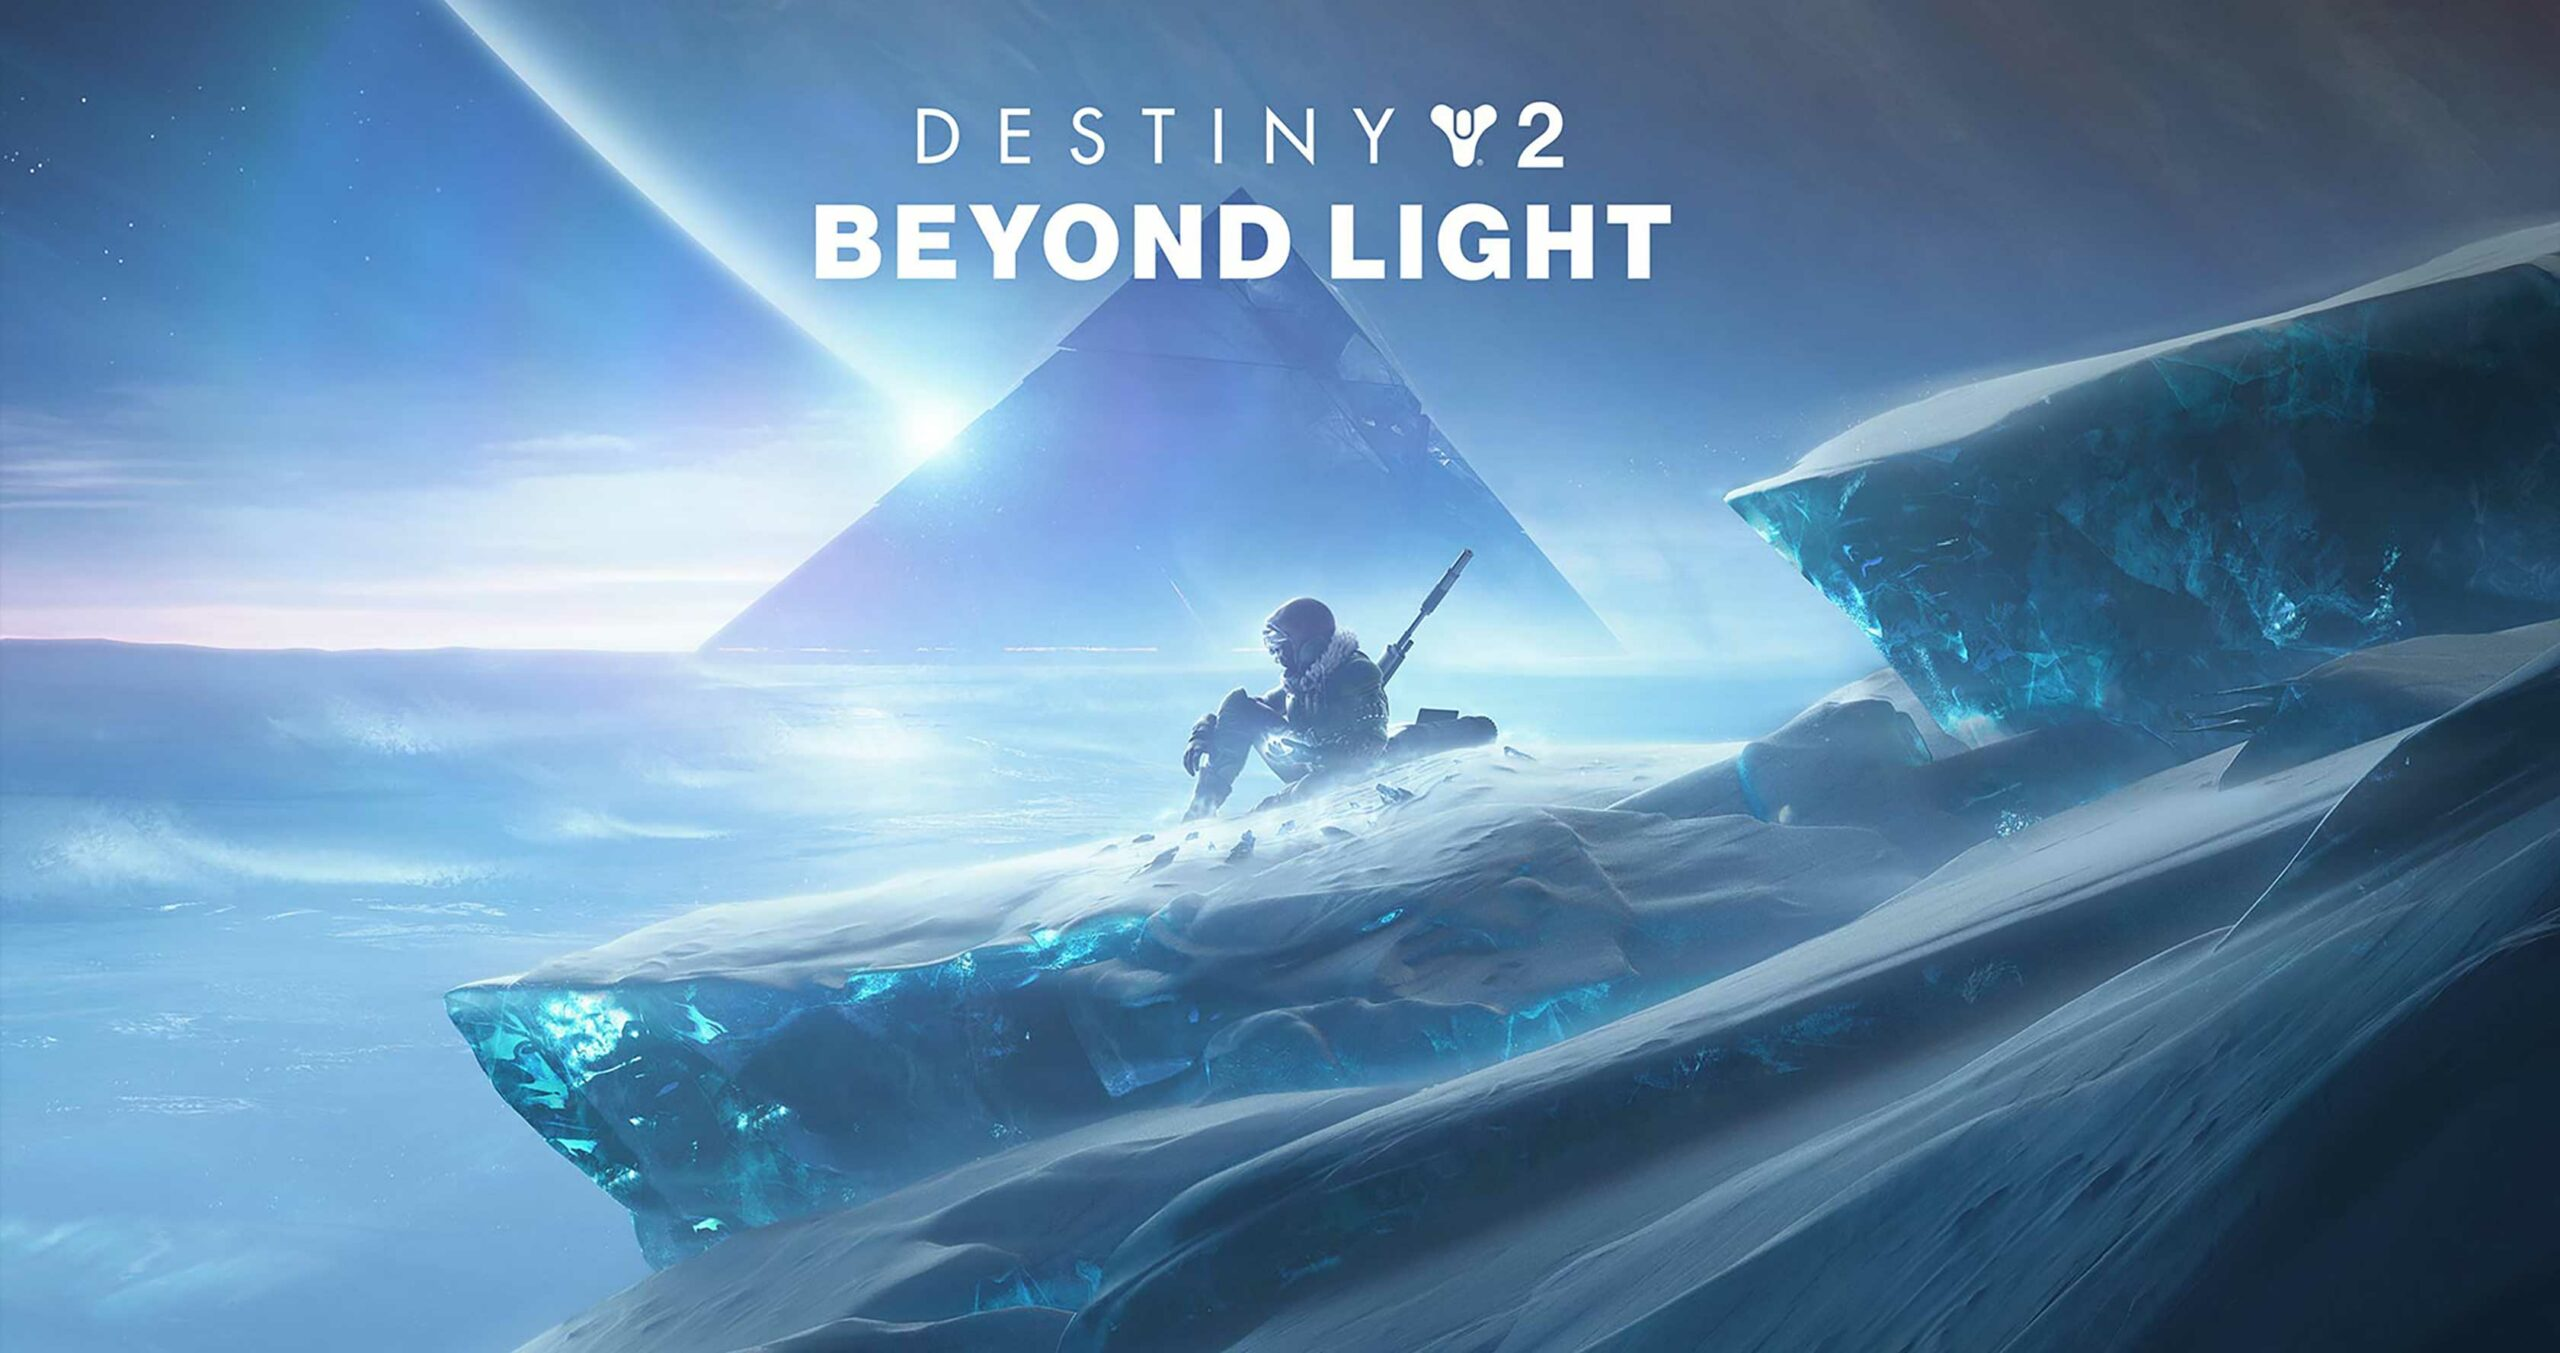 Destiny 2 Beyond Light